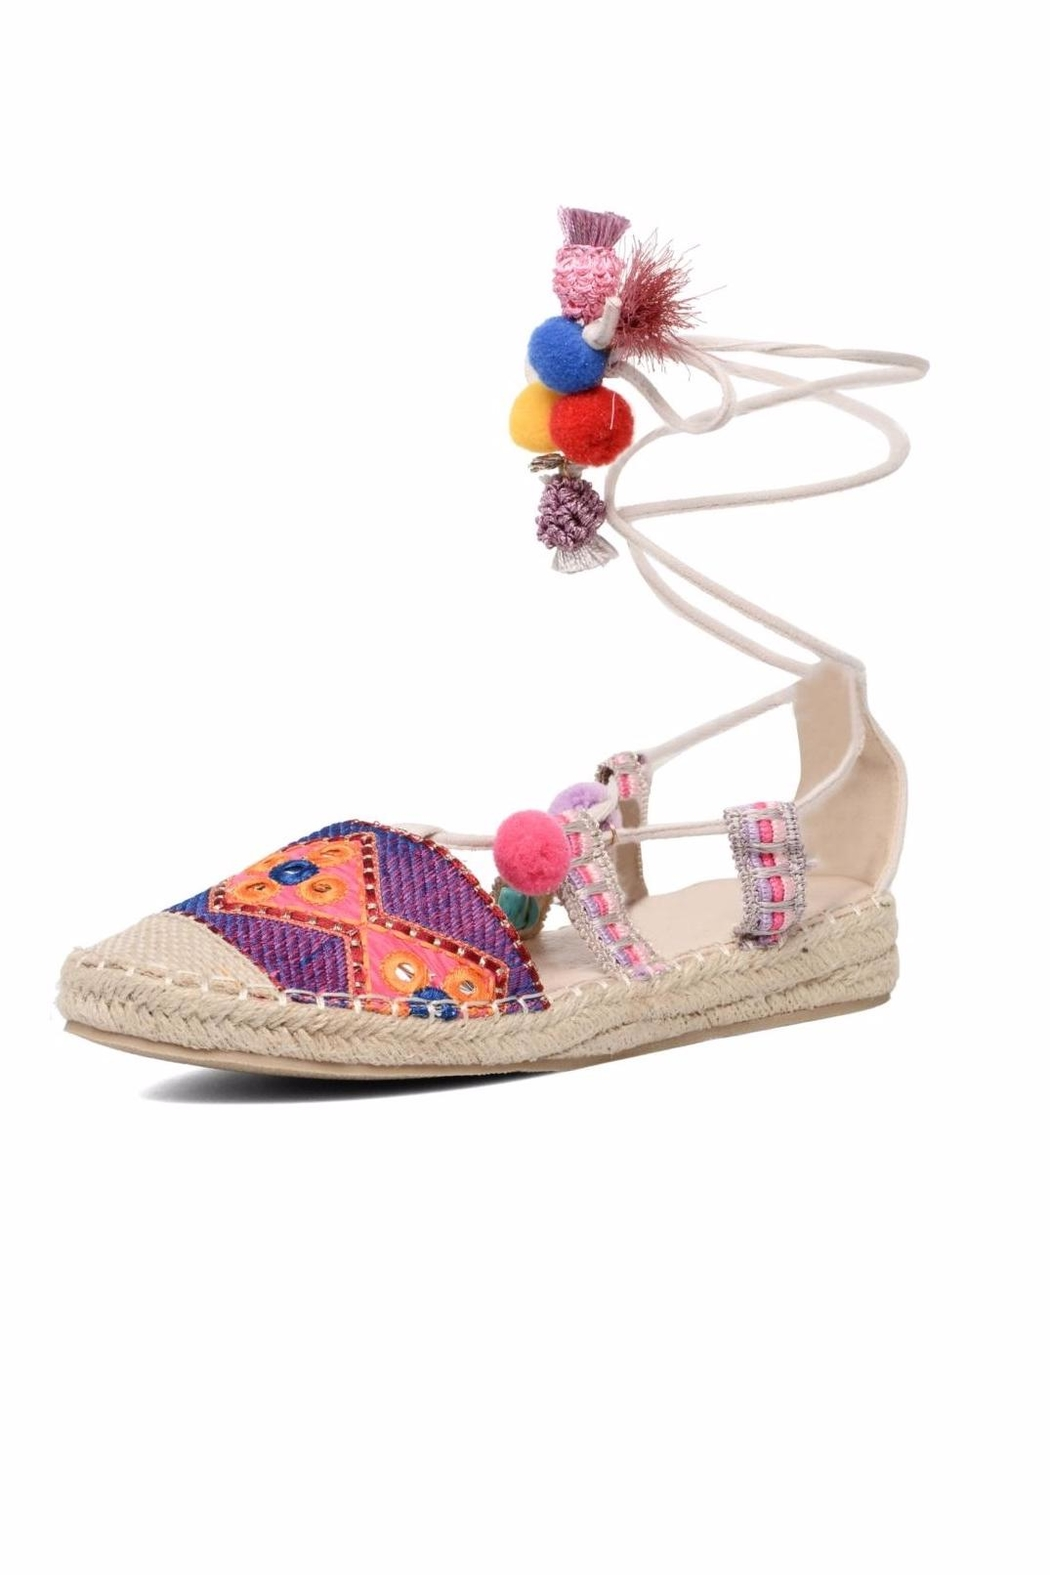 fashionable online cheap sale pay with visa COOLWAY Bamburi Multi-Coloured Canvas Sandals Jd5pITbxhz